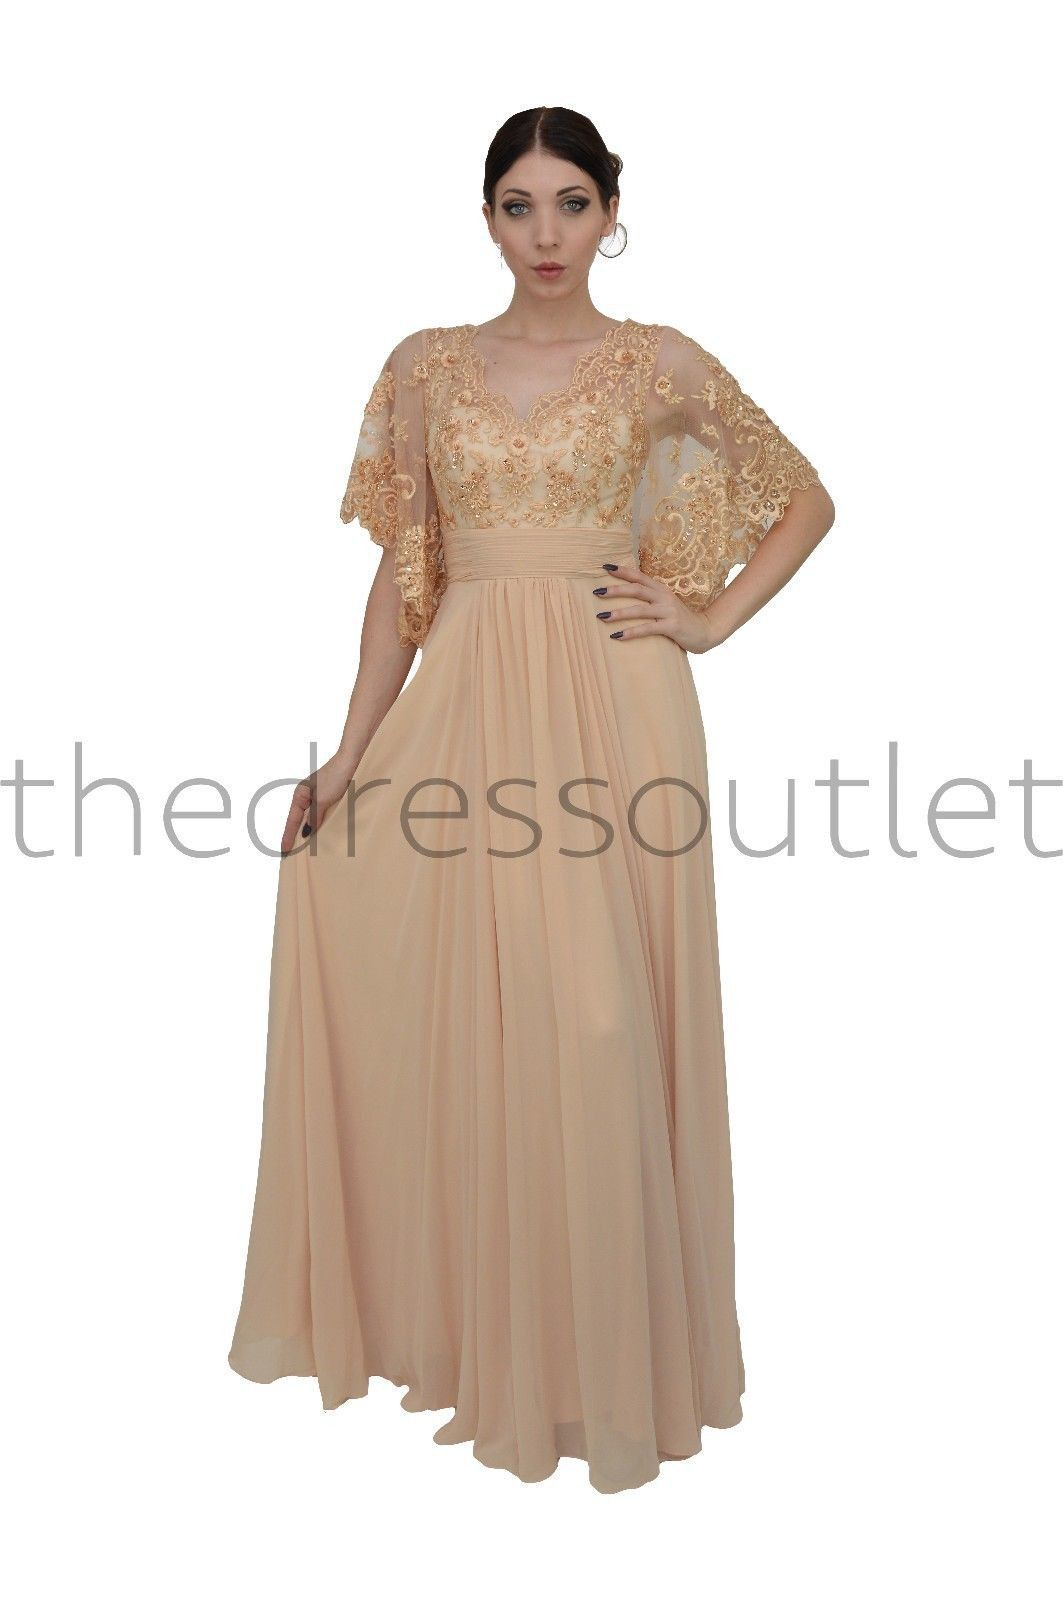 eef8505f943 An elegant long formal gown with gorgeous kimono sleeves and a lace bust.  The bottom is an elegant floor length skirt with beautiful movement. This  dress is ...